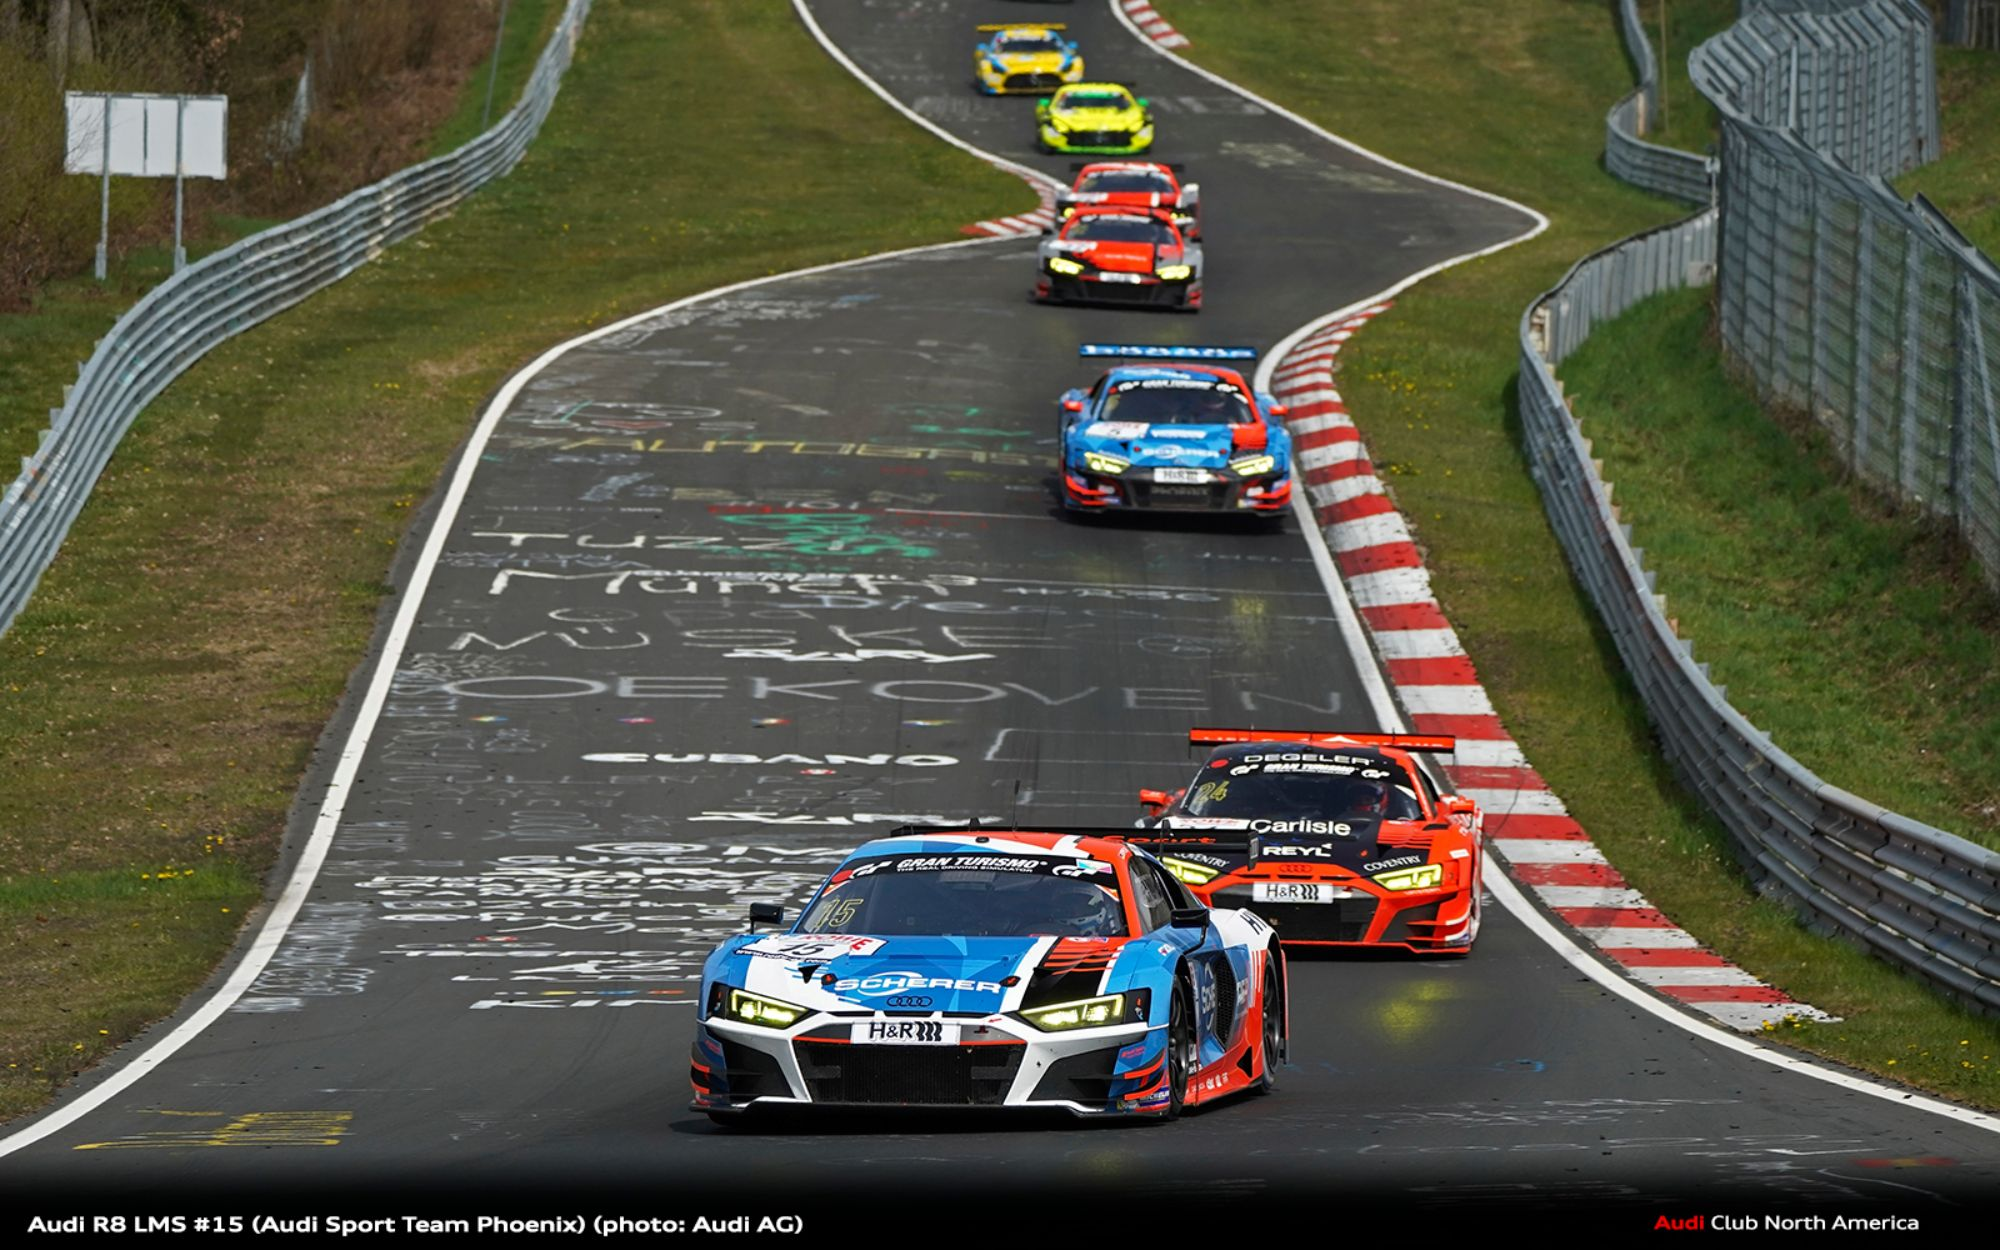 Promising Line-up from Audi at the Nürburgring